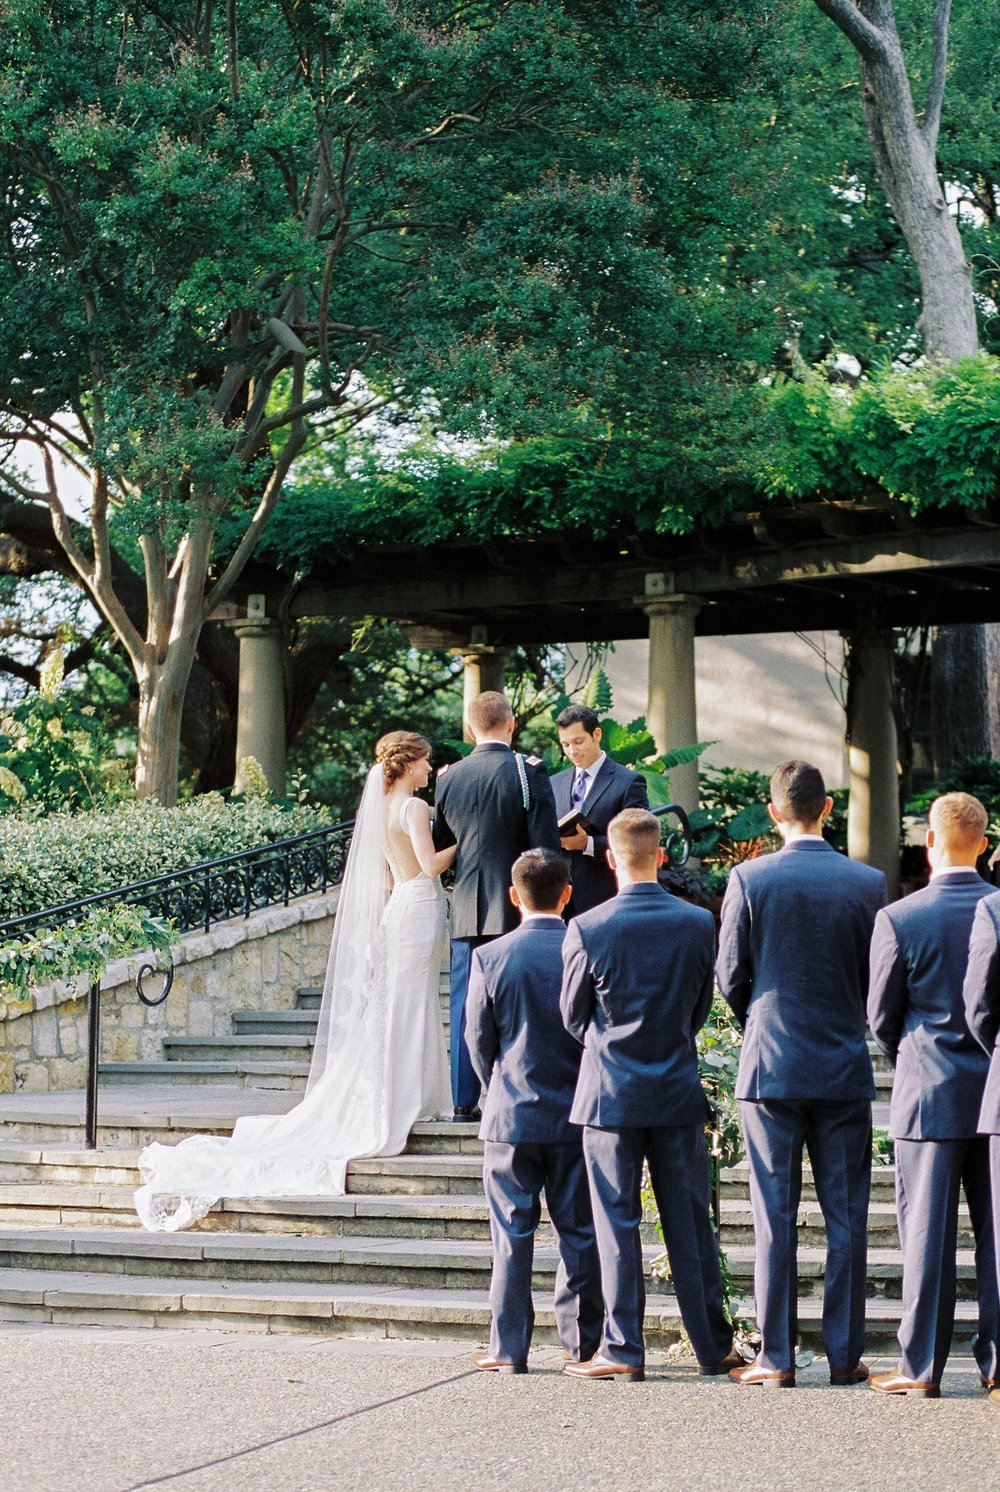 Becca Lea Photography - Dallas, Austin Destination Fine Art Wedding Photographer